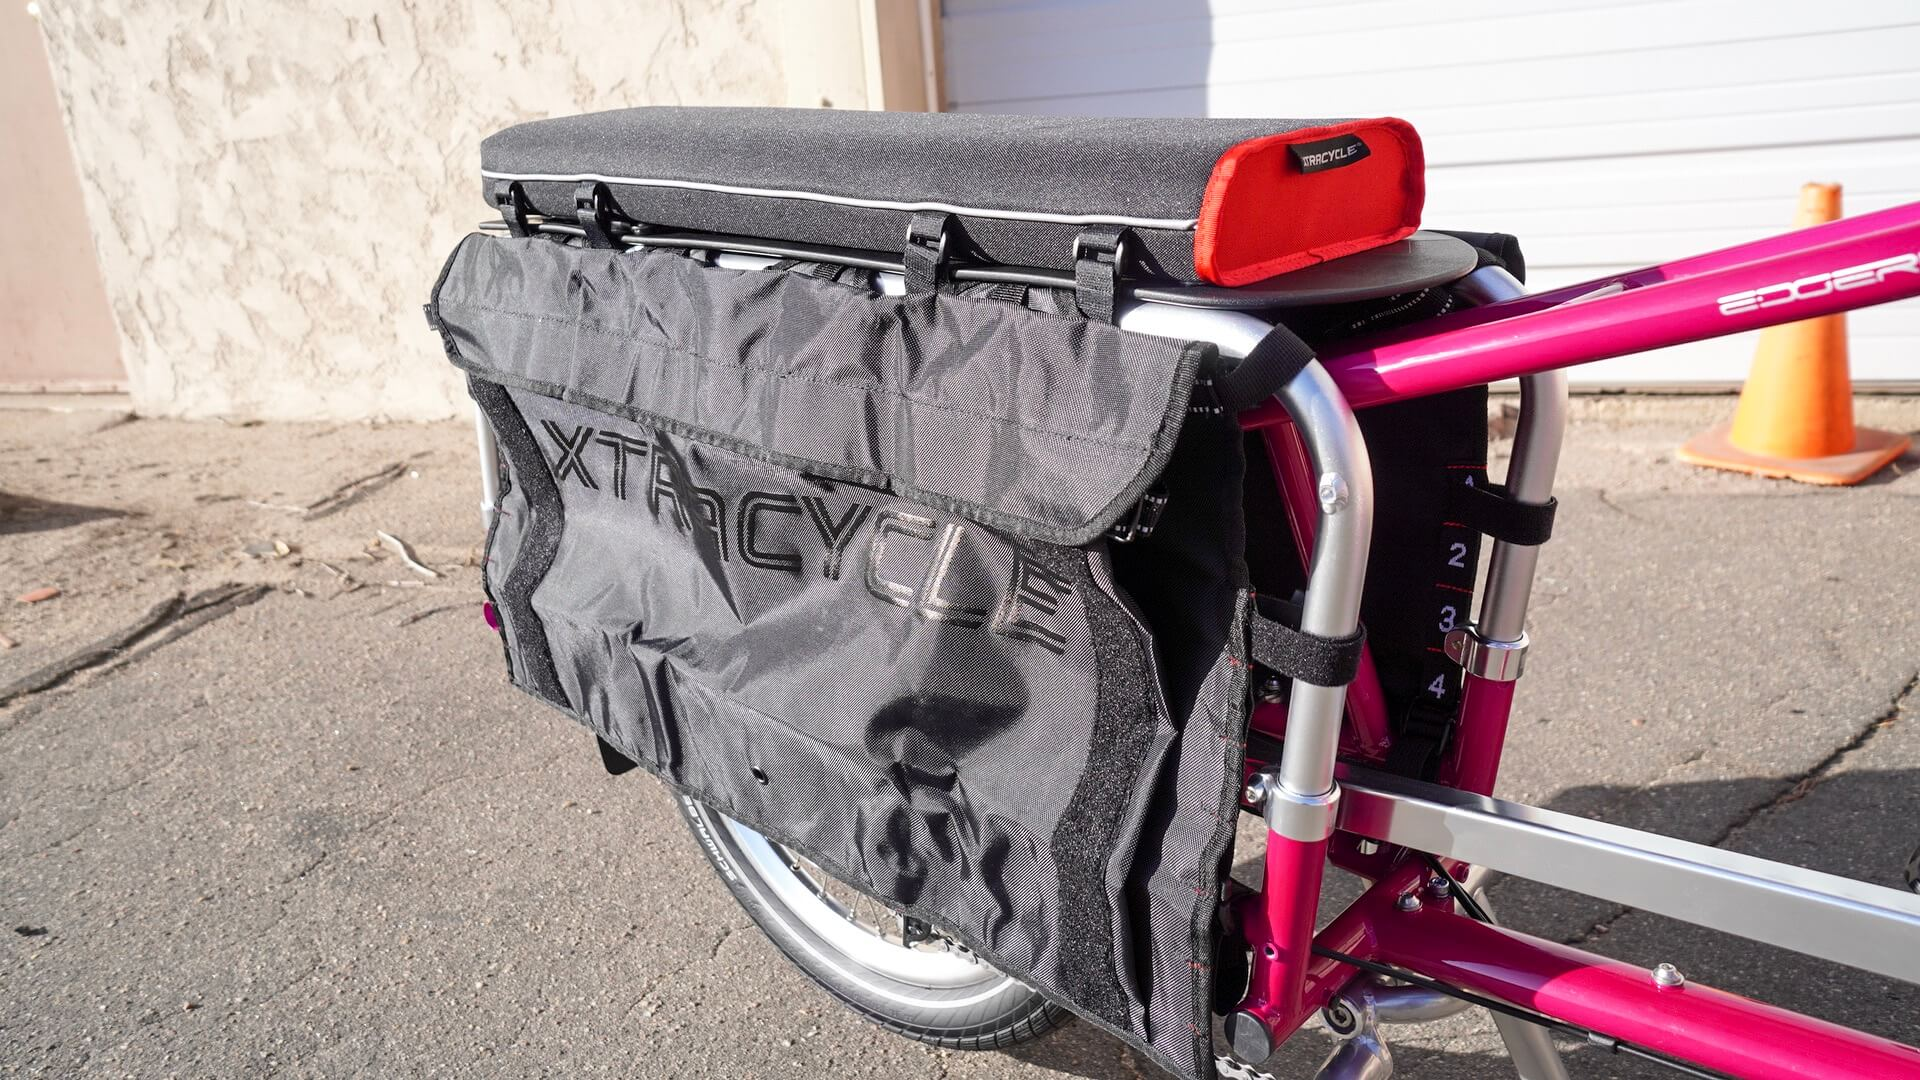 Xtracycle Edgerunner 11i Non-Electric Cargo Bike